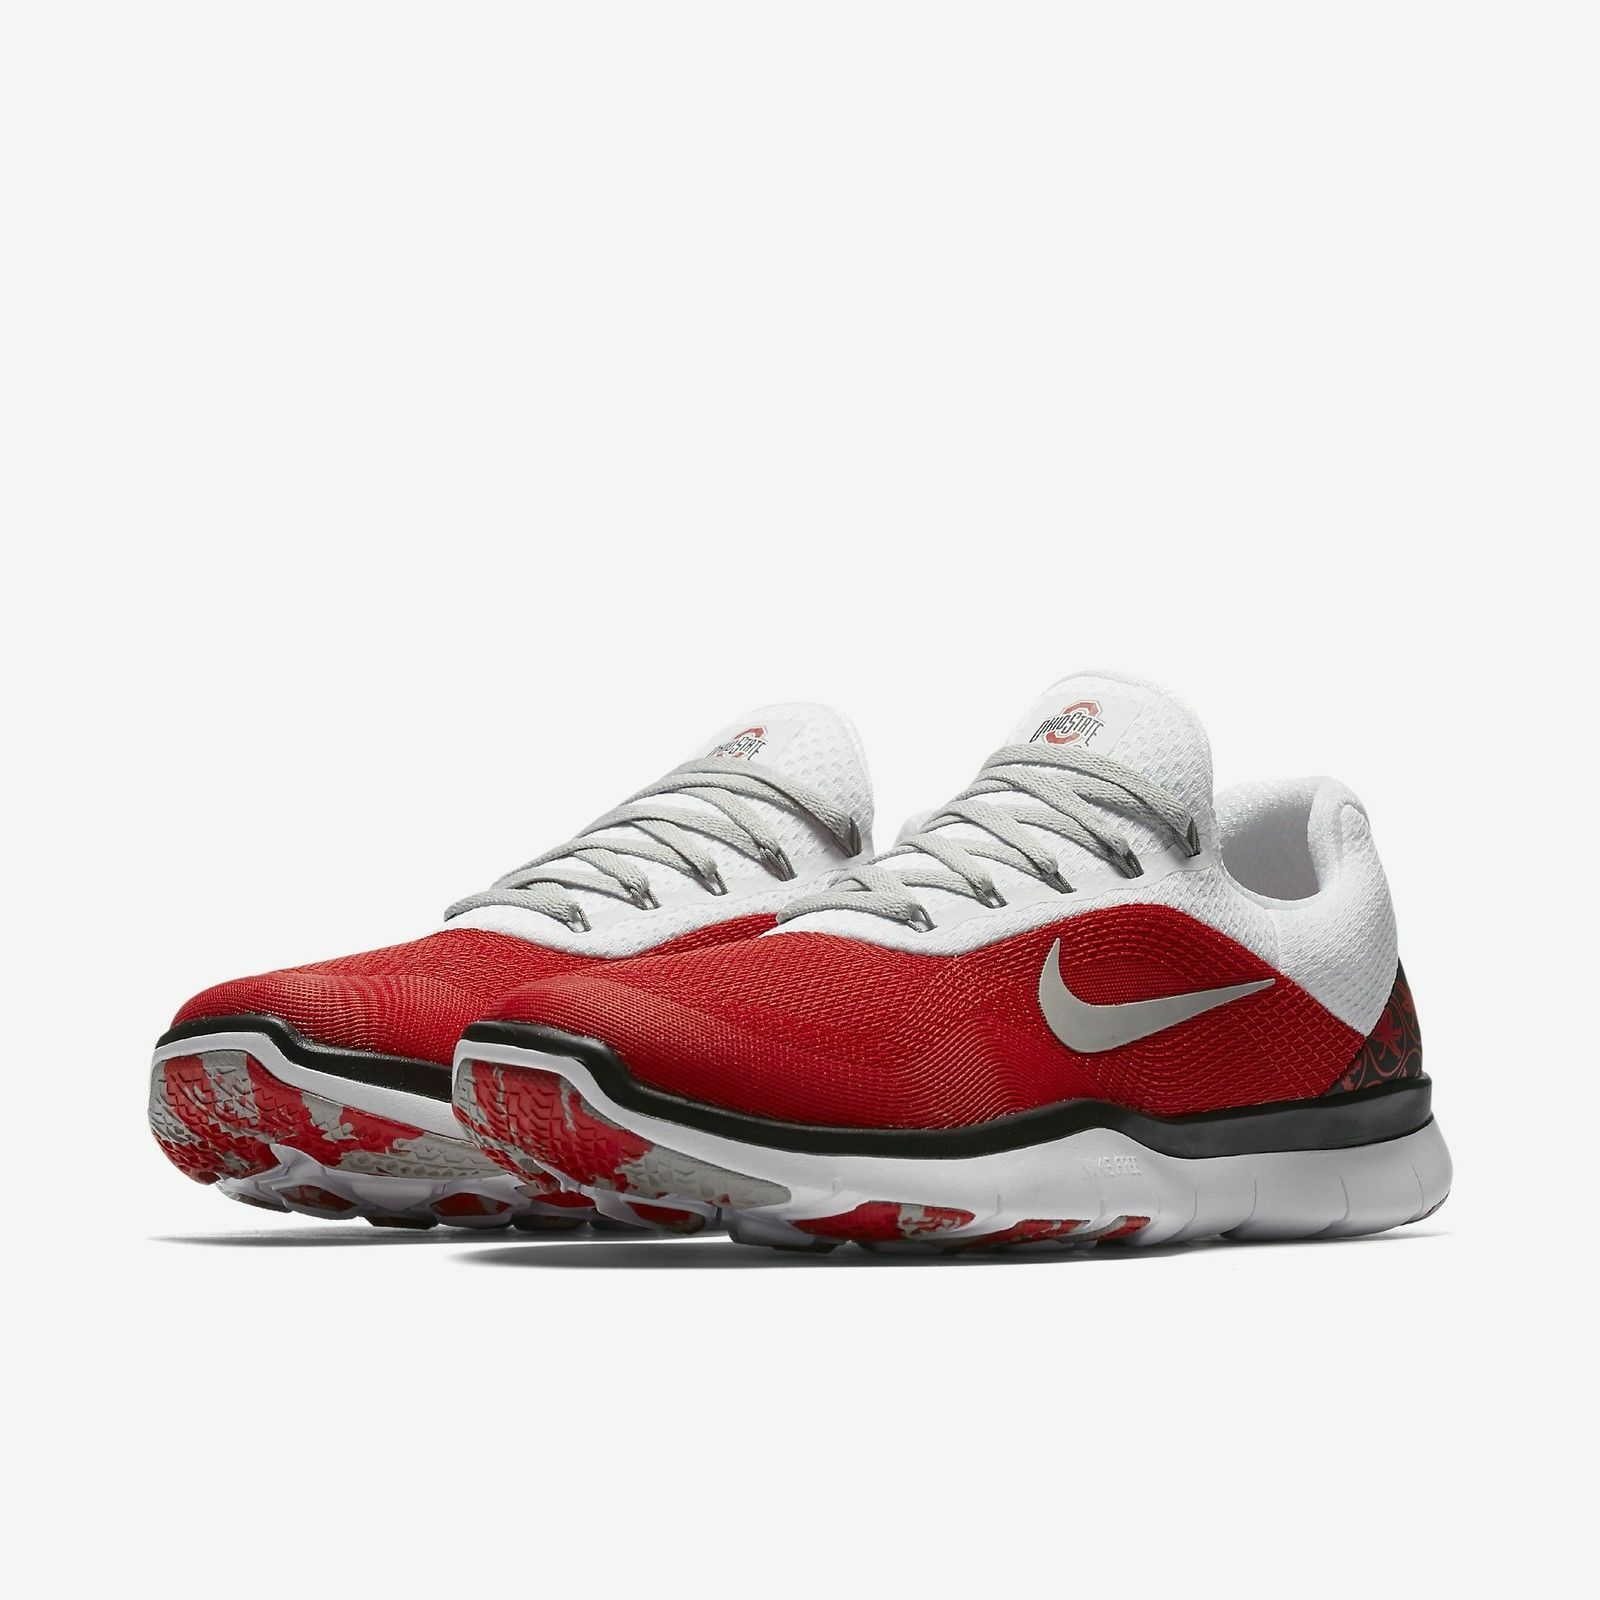 Ohio State Buckeyes Nike Free Trainer V7 shoes Men's 14